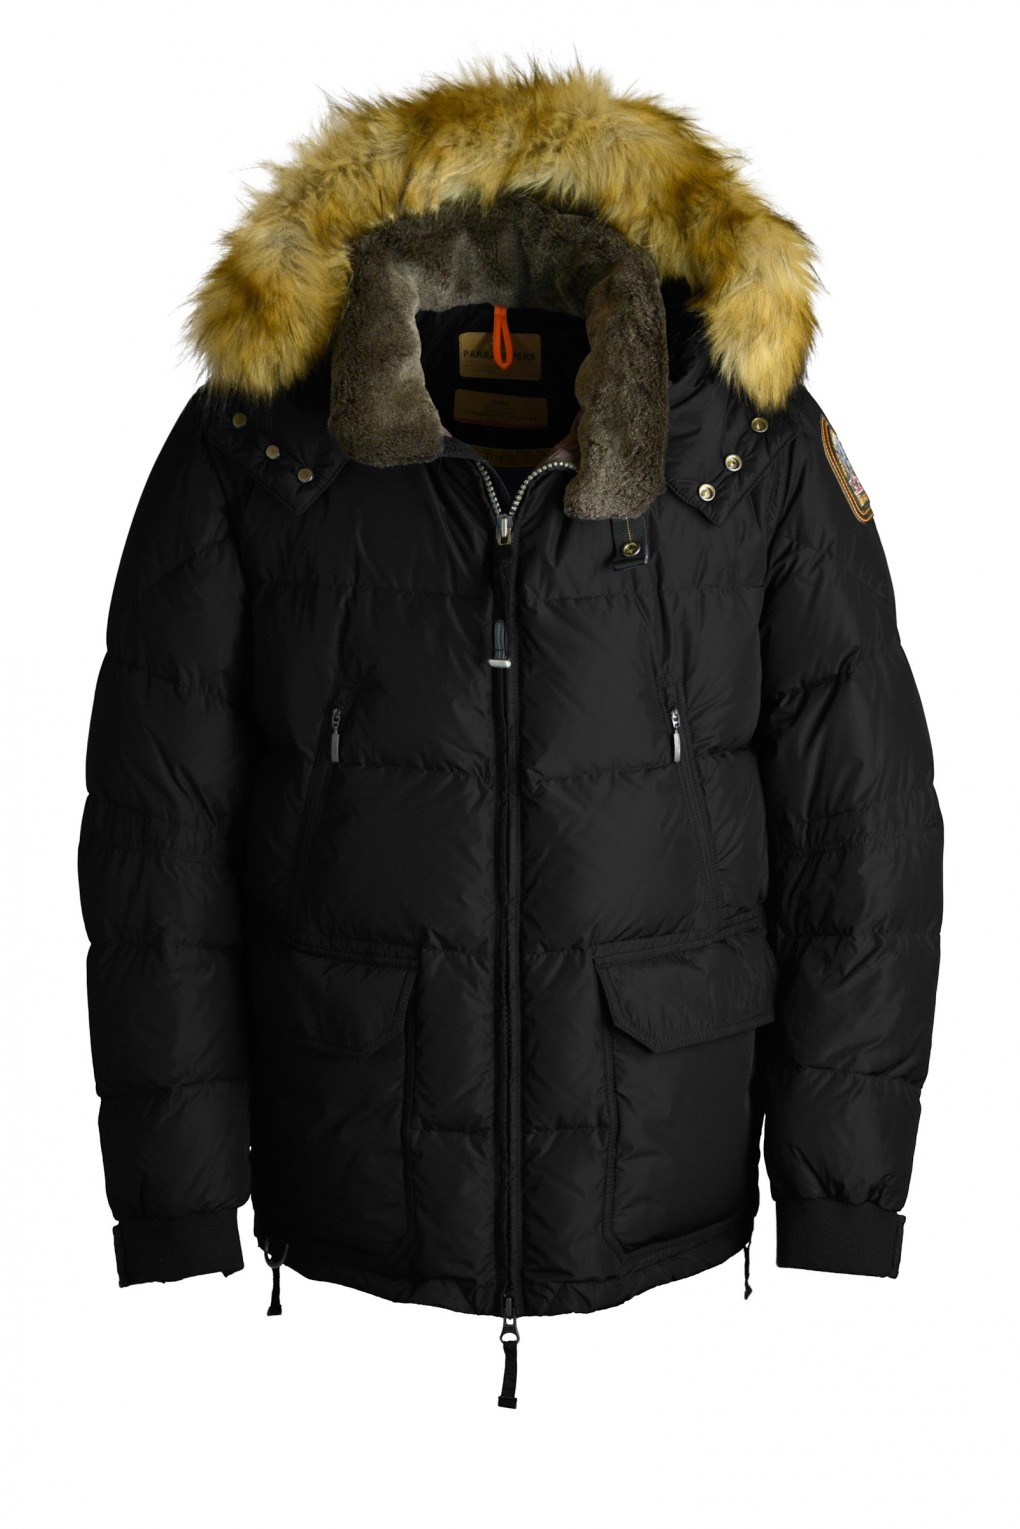 parajumpers MAINE ECO man outerwear Black